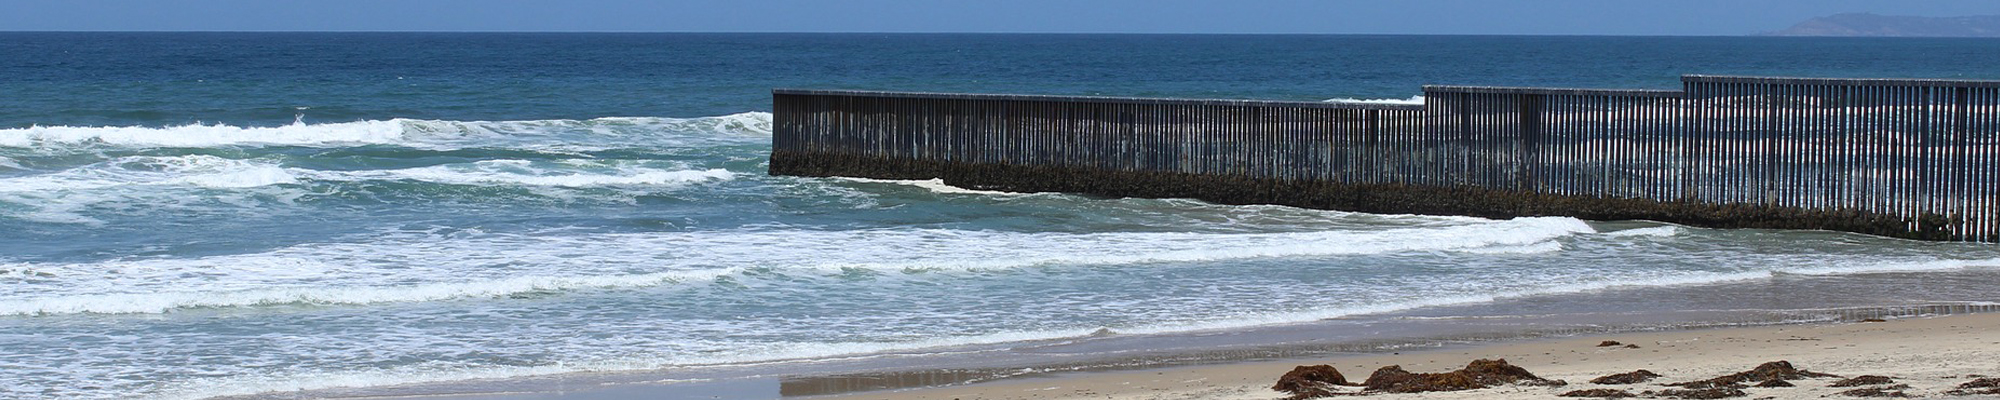 border fence in ocean between Mexico and San Diego